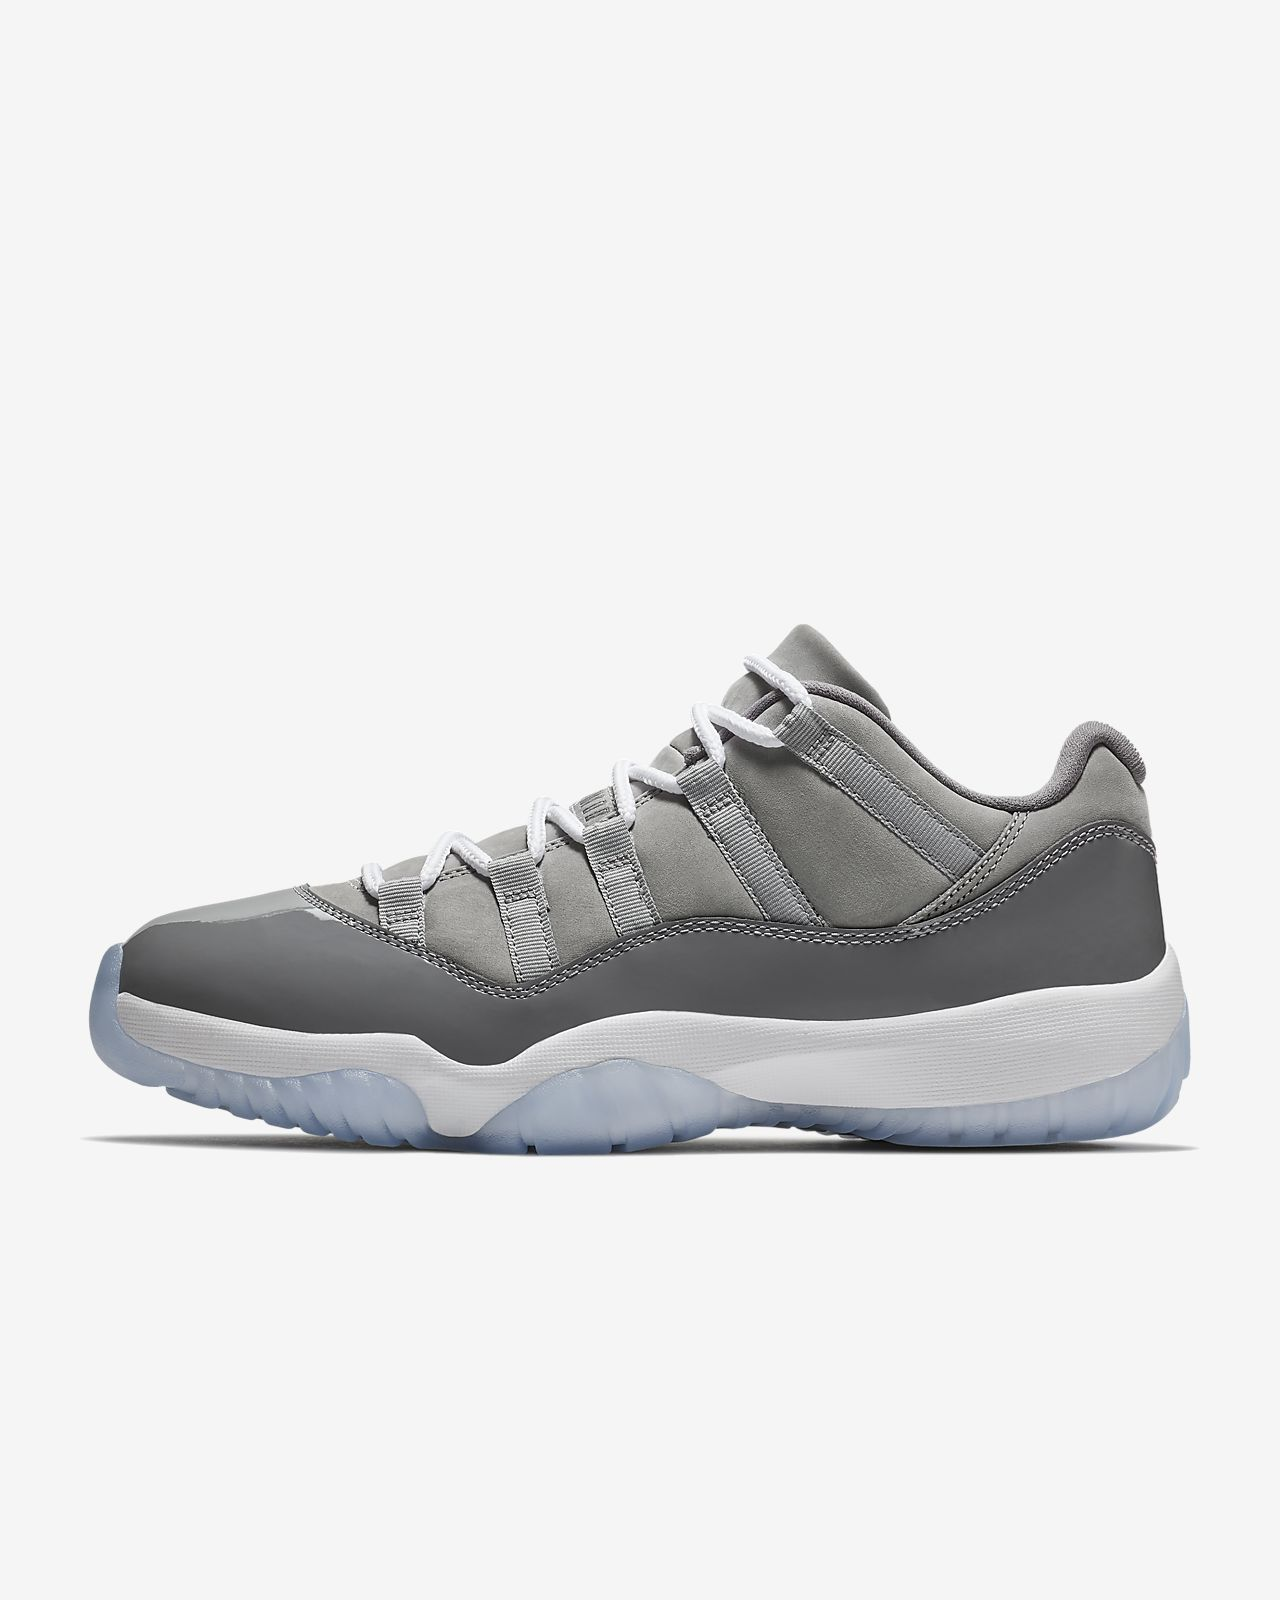 8a7497dd583 Air Jordan 11 Retro Low Men s Shoe. Nike.com MY